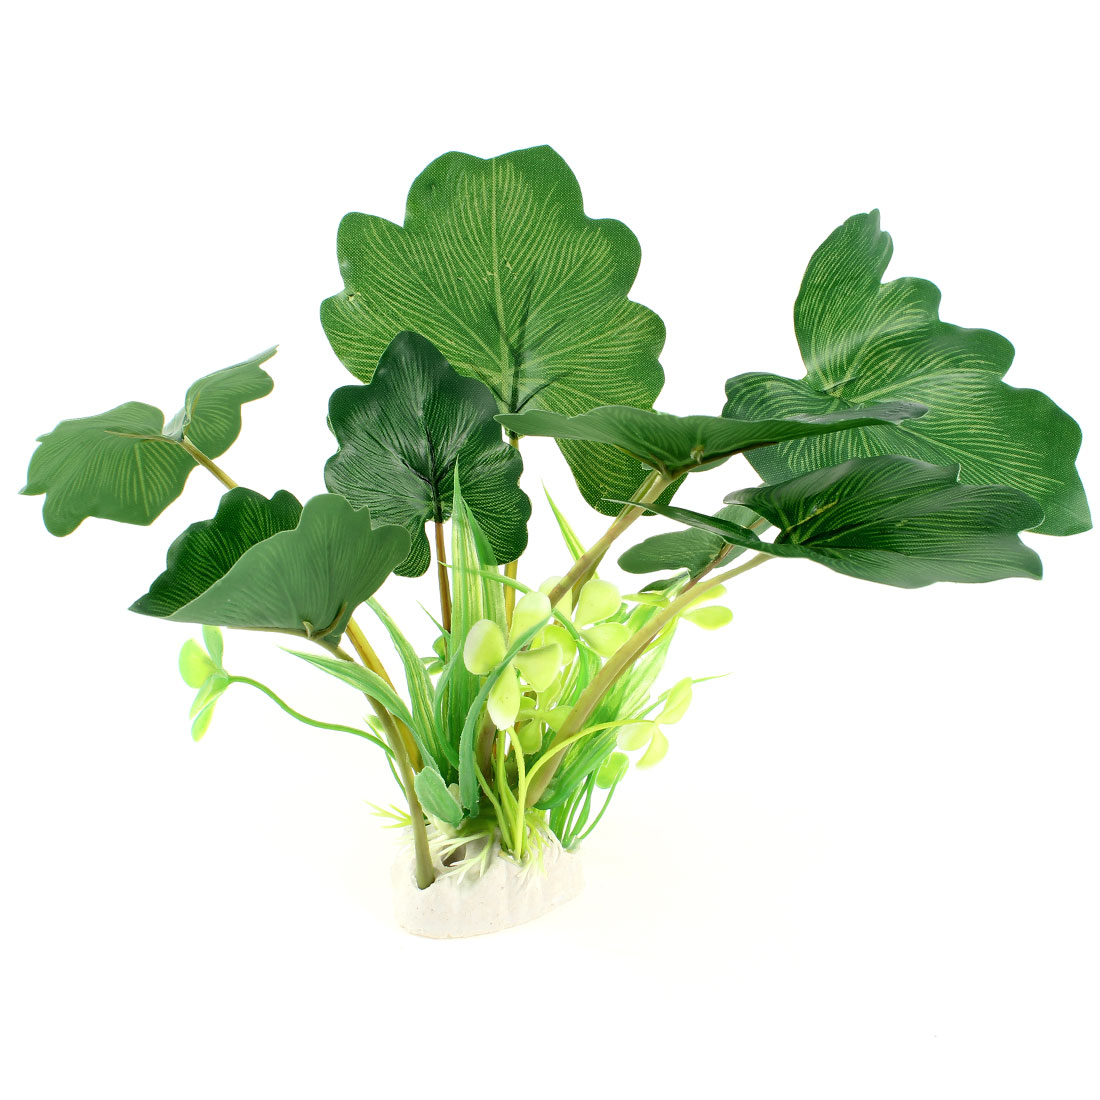 "8.7"" High Ceramic Base Plastic Water Leaf Plant Green for Fish Tank"